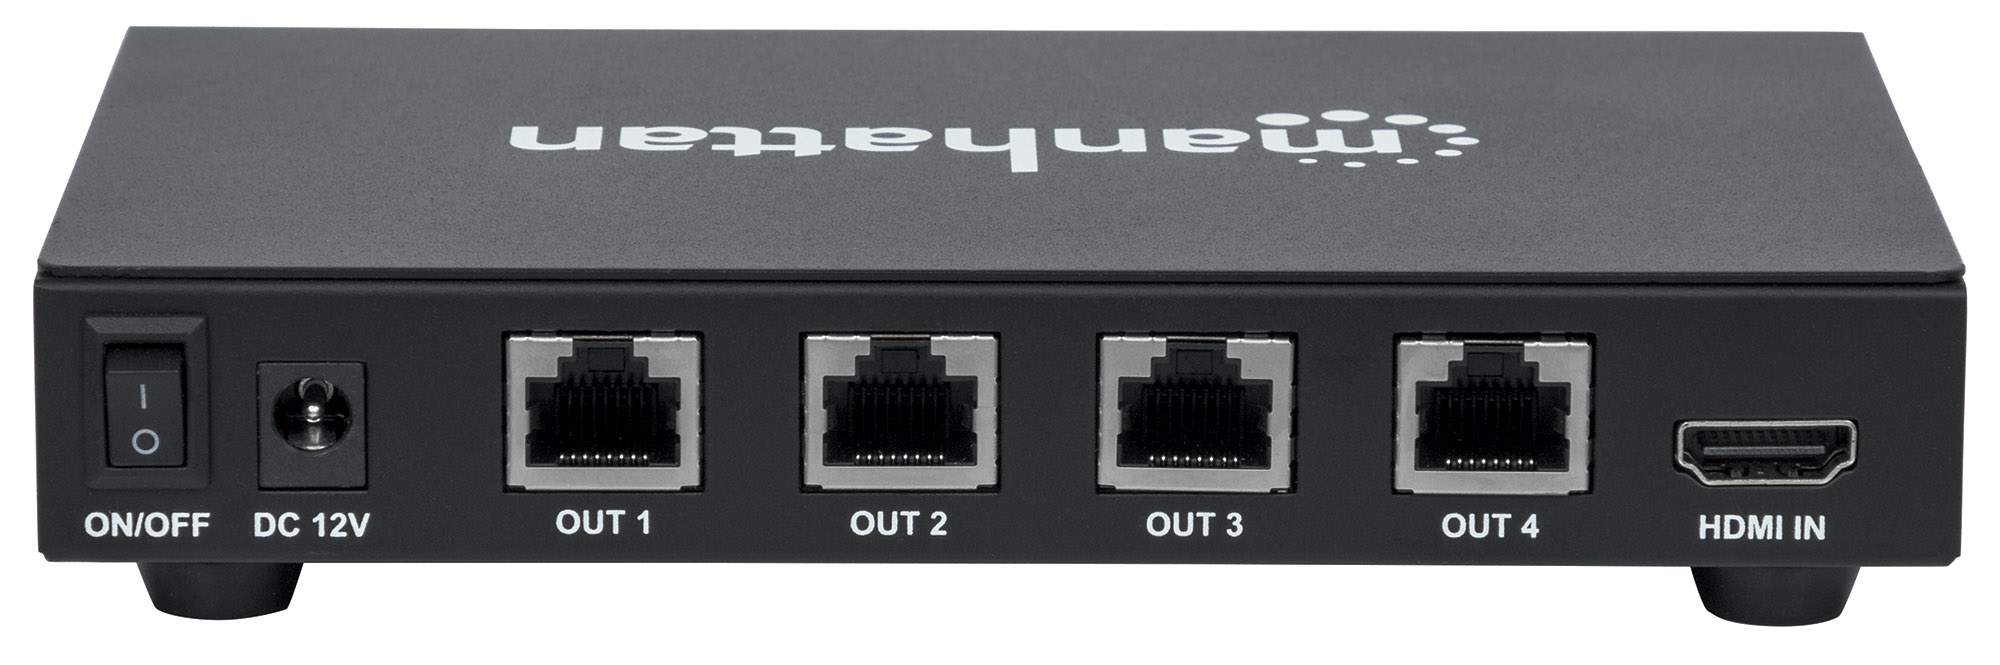 1080p 4-Port HDMI Extending Splitter Transmitter